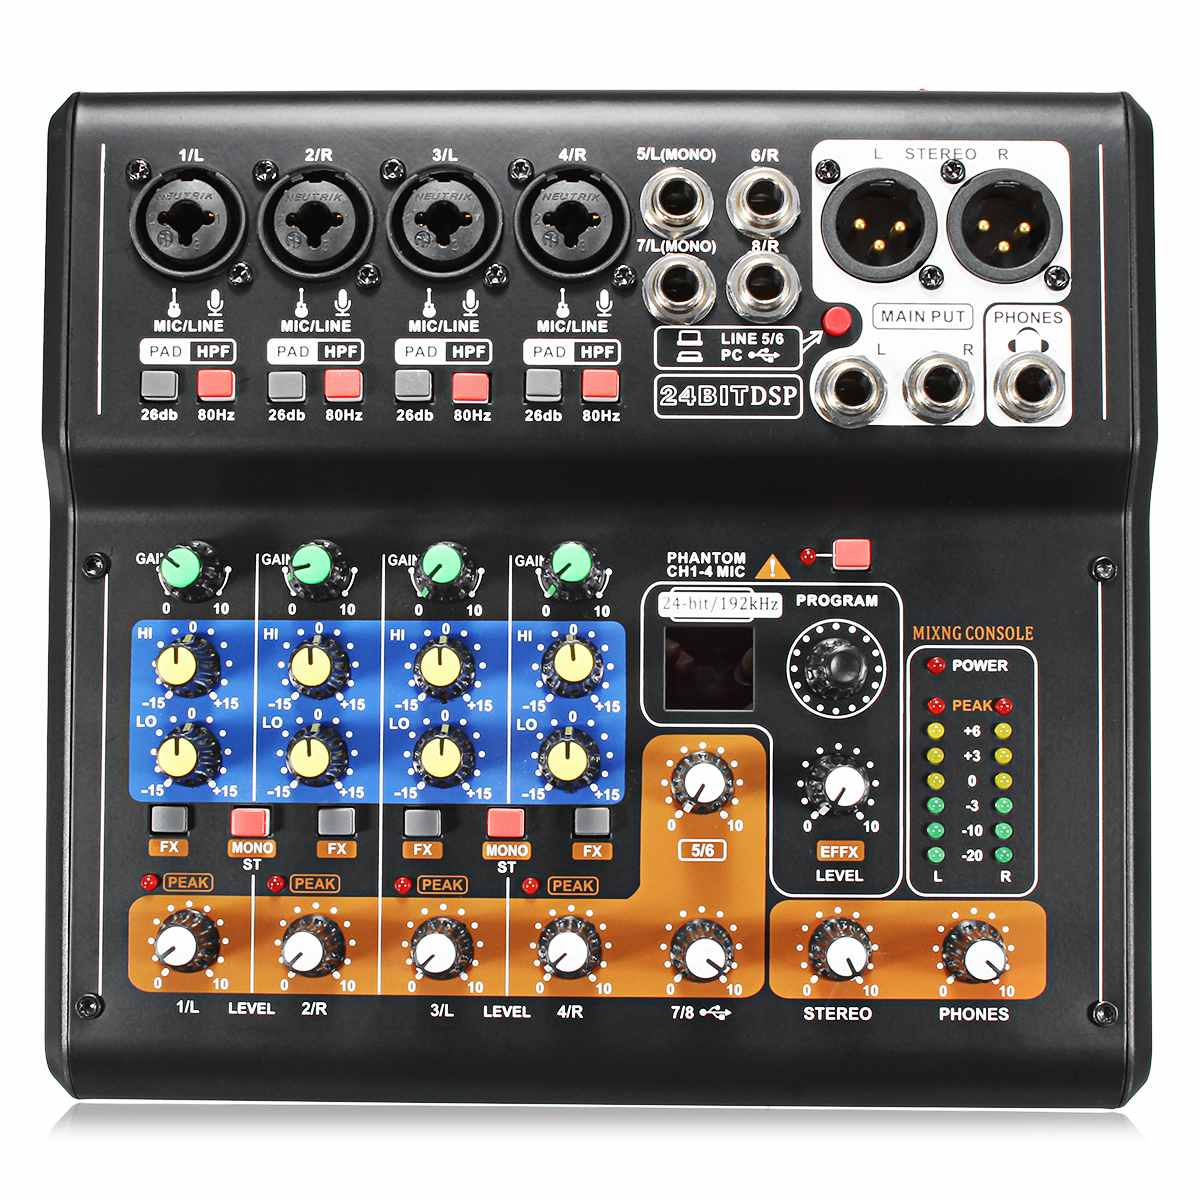 8 Channel 48V Professional Mini Portable Mixer Live Studio Audio Karaoke Mixer USB DJ Sound Mixing Console for Family KTV Party professional 4 channel live mixing studio audio sound console network anchor portable mixing device vocal effect processor